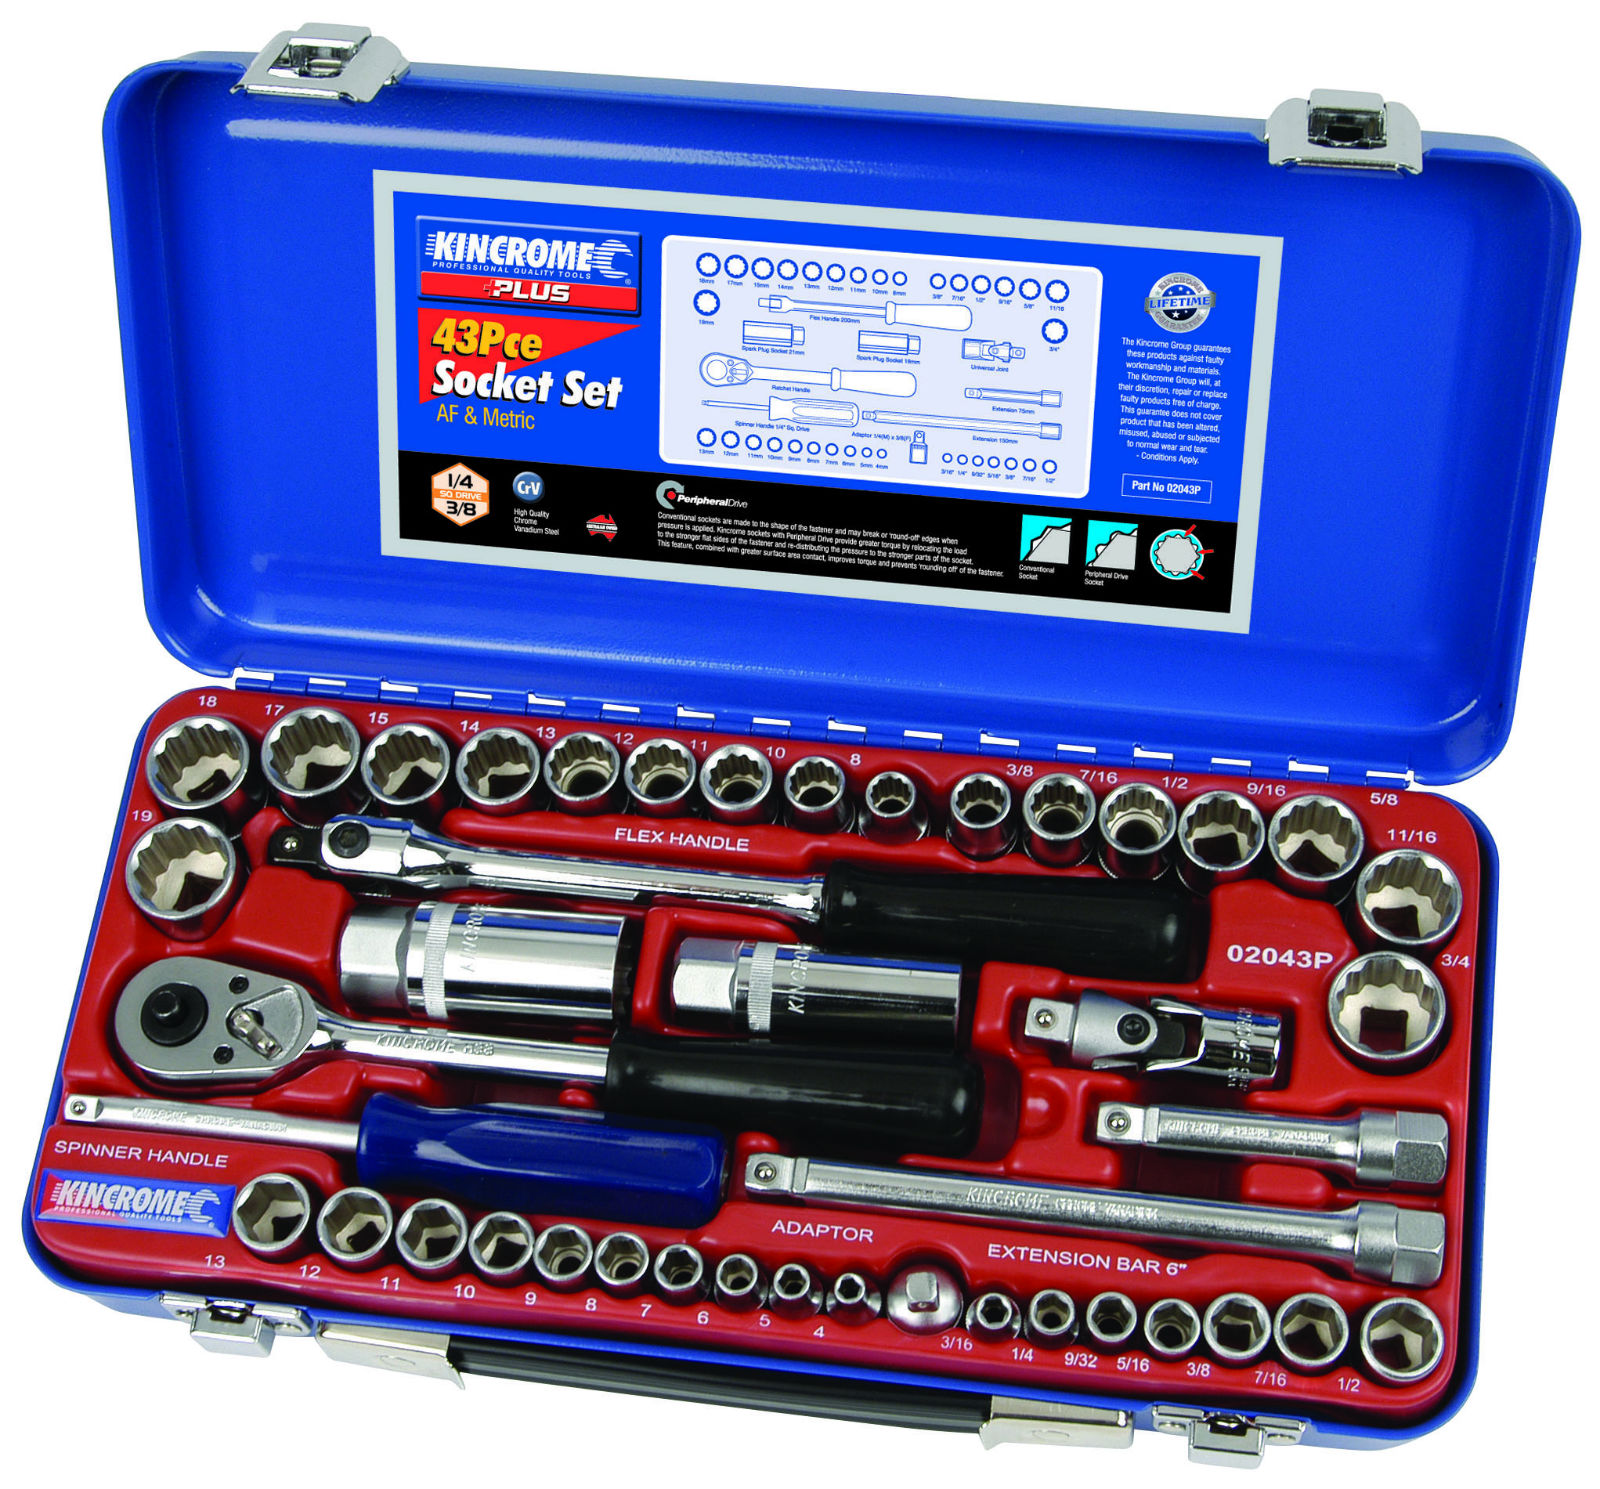 PLUS SOCKET SET 43PC 1/4 3/8